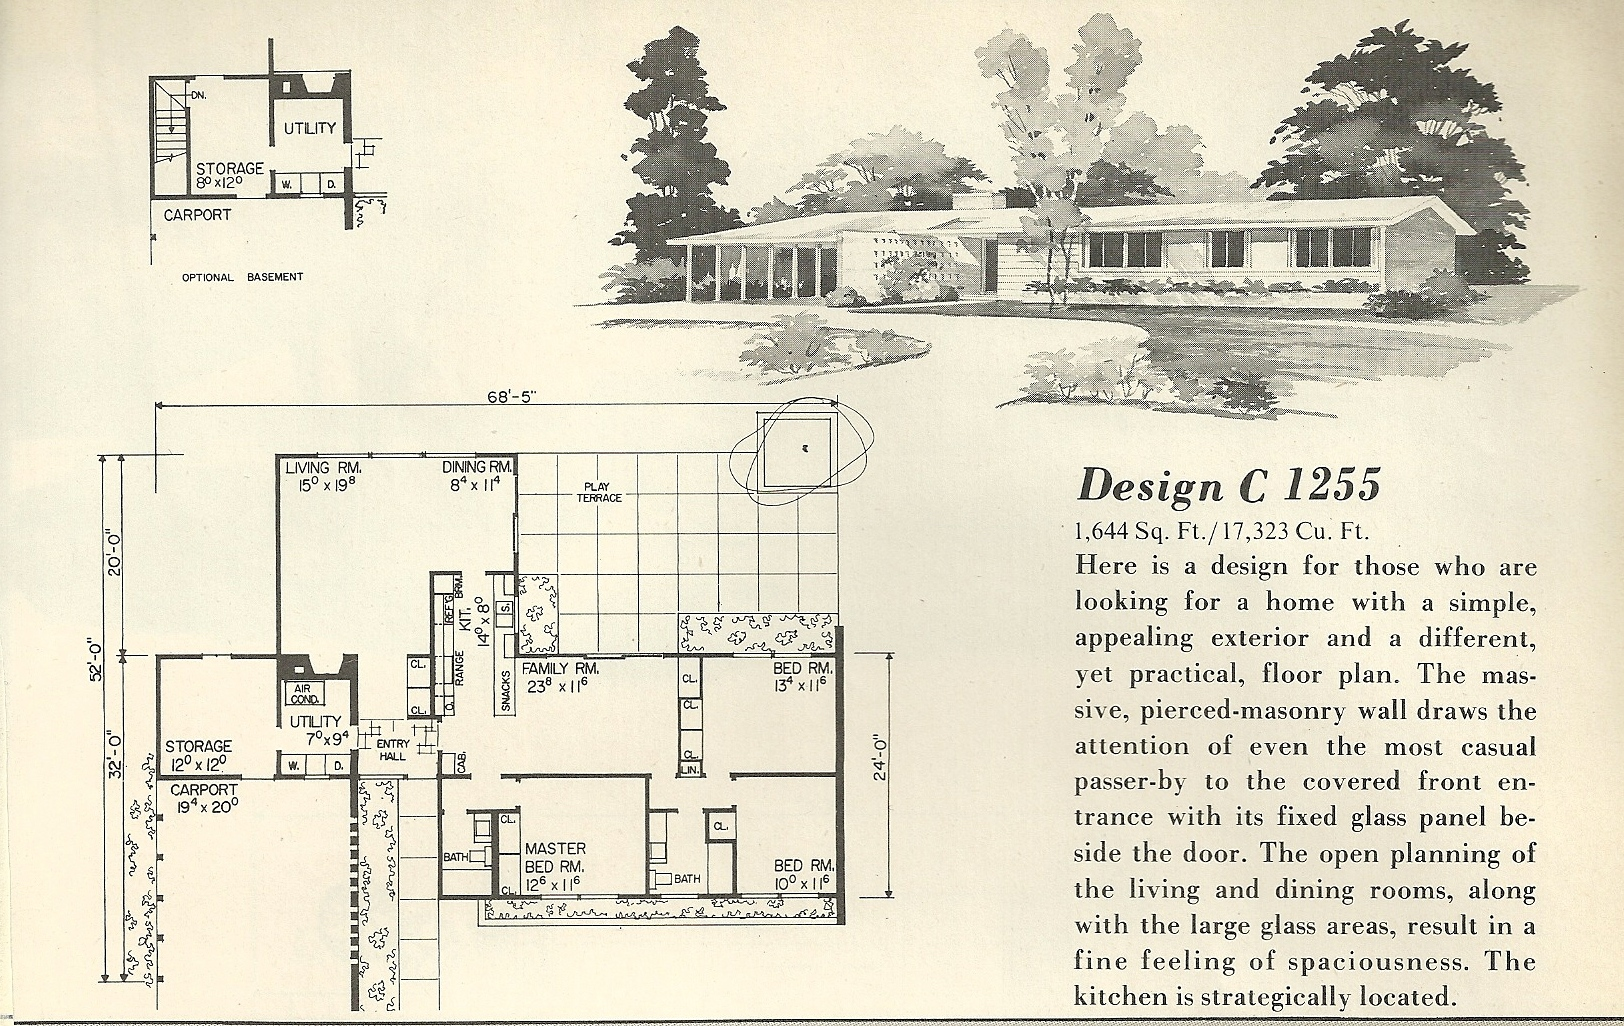 Vintage house plans 1255 antique alter ego for Mid century modern plans